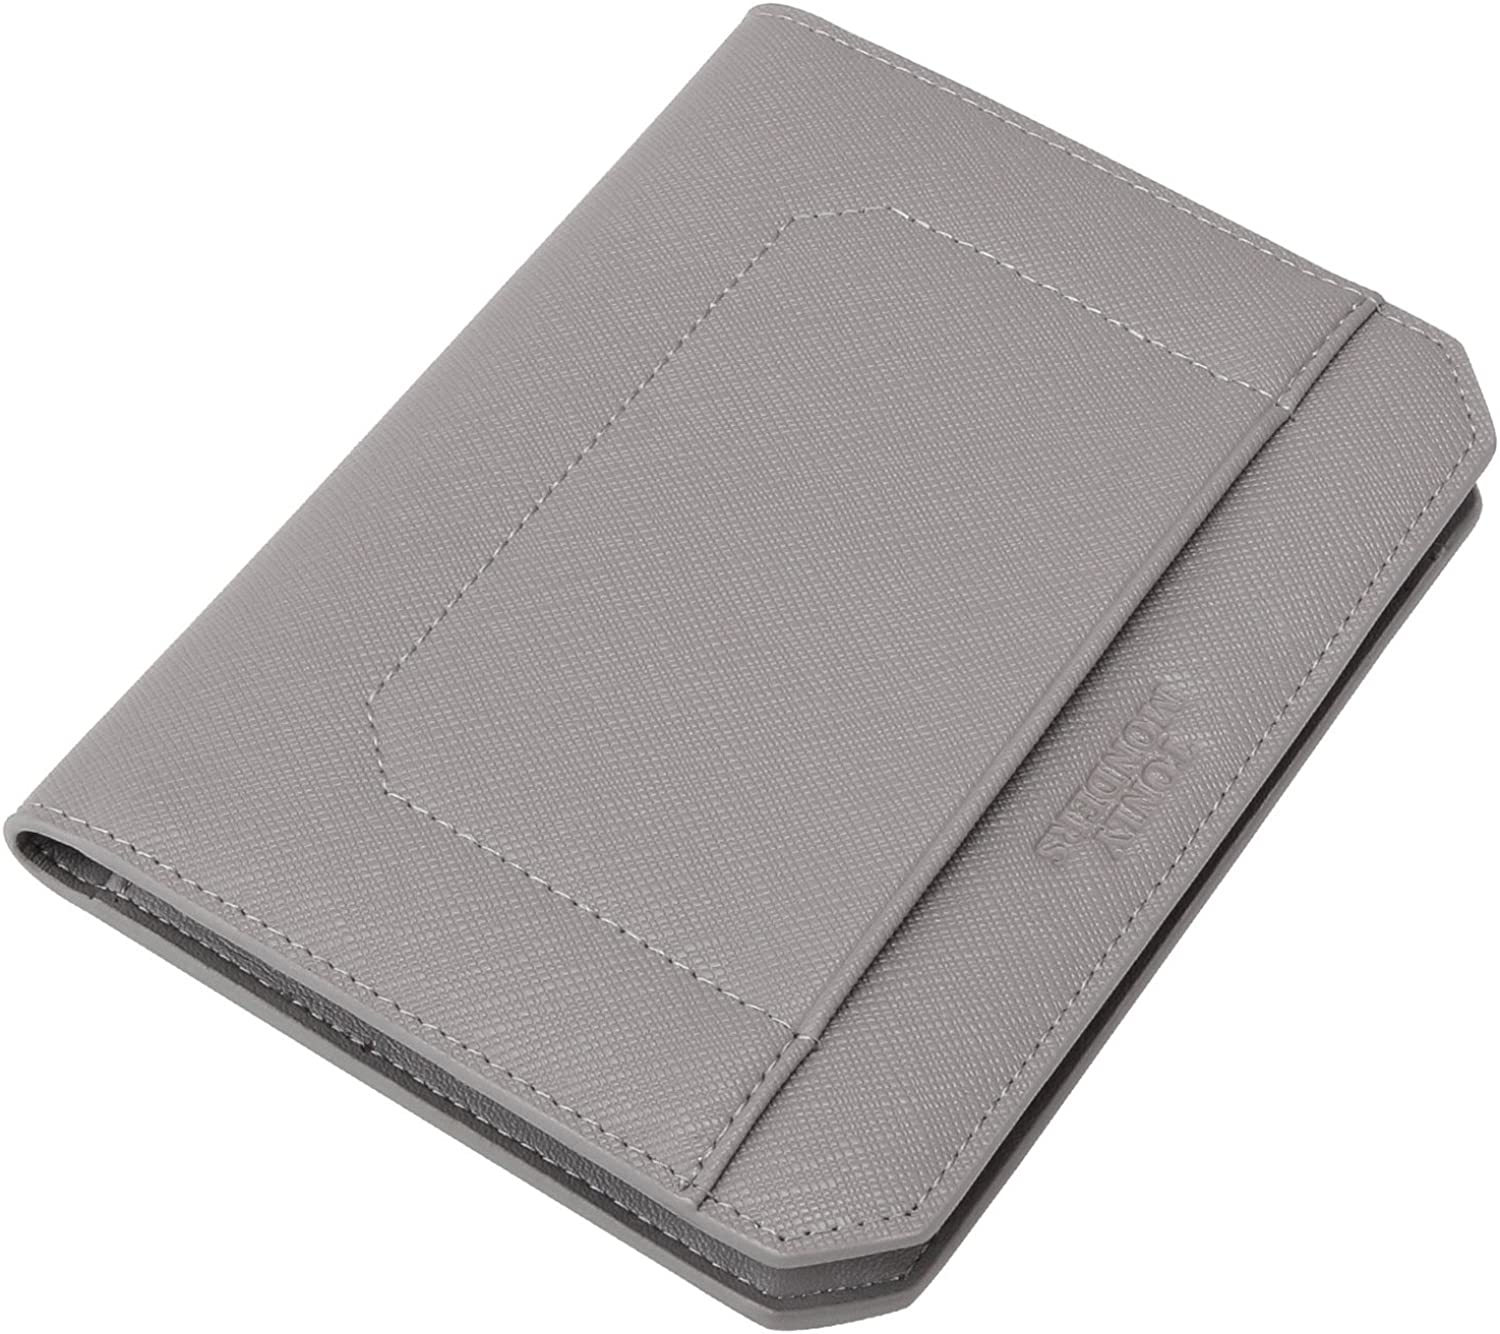 Tonly Monders Leather Passport Holder Cover RFID Blocking Portable Travel Wallet Case